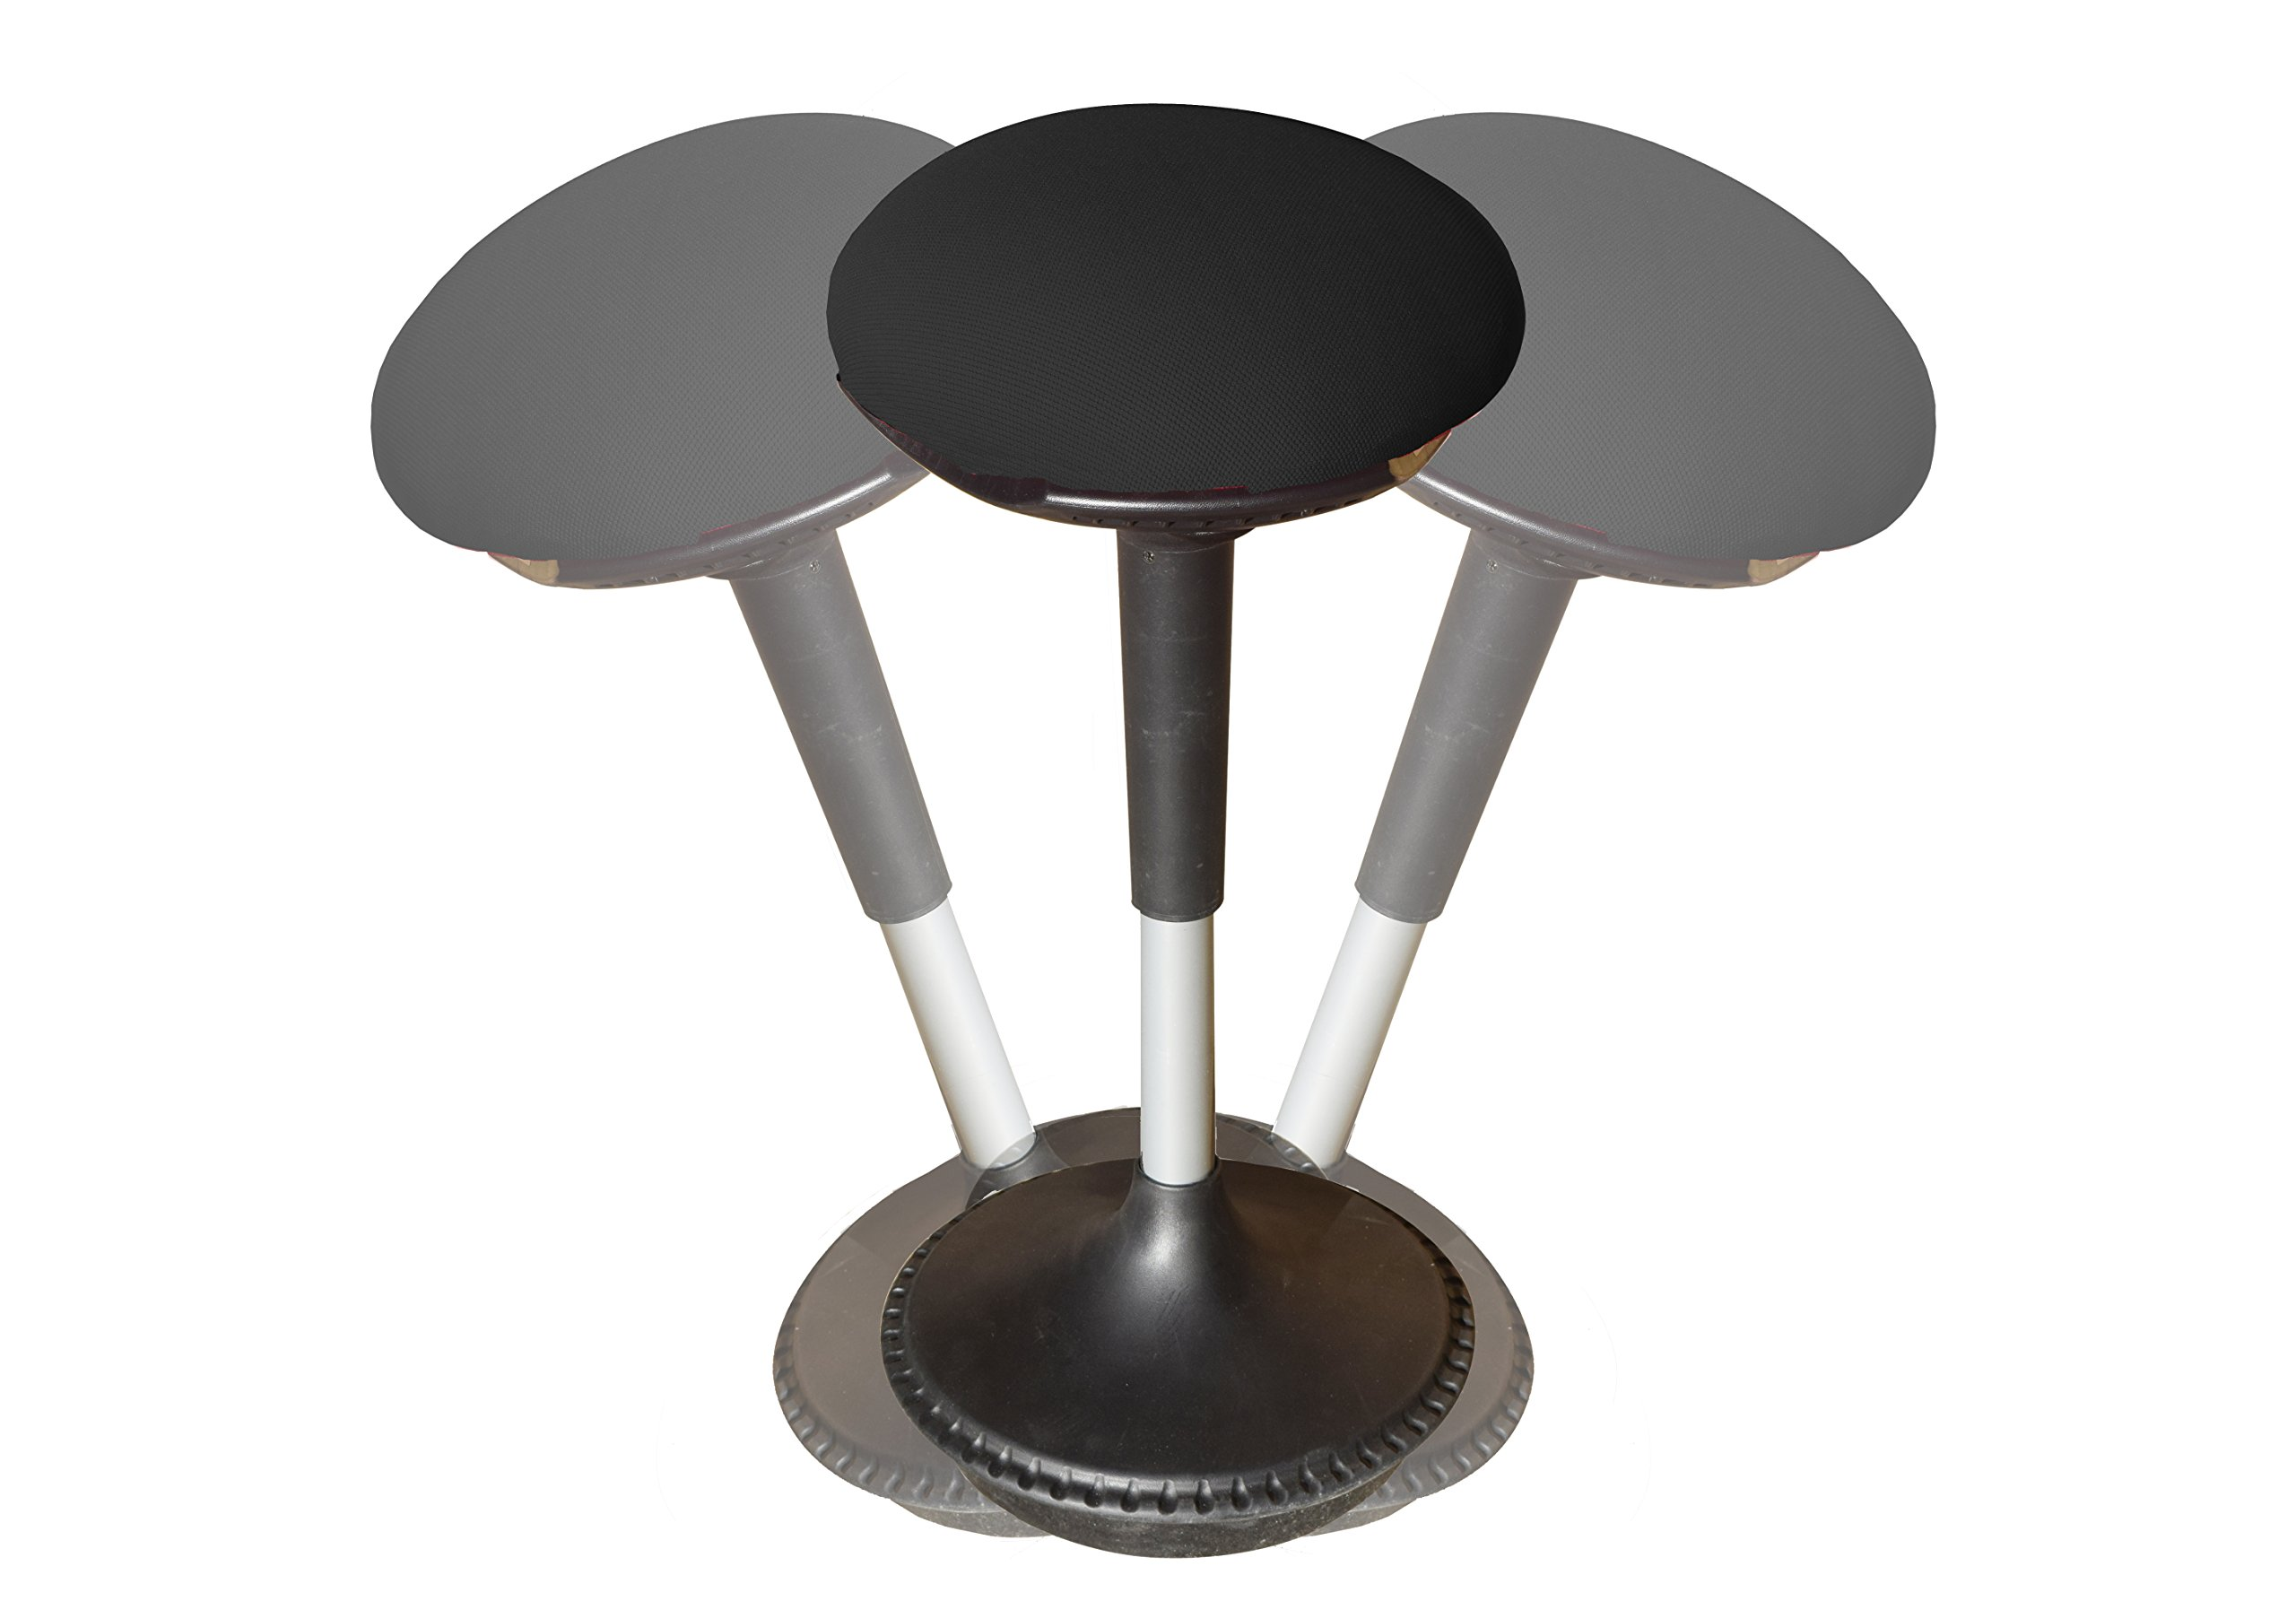 Wobble Stool Adjustable Height Active Sitting Balance Chair for Office Stand Up Desk. Best Tall Swivel Ergonomic Stability Perch Standing Desk Fabric